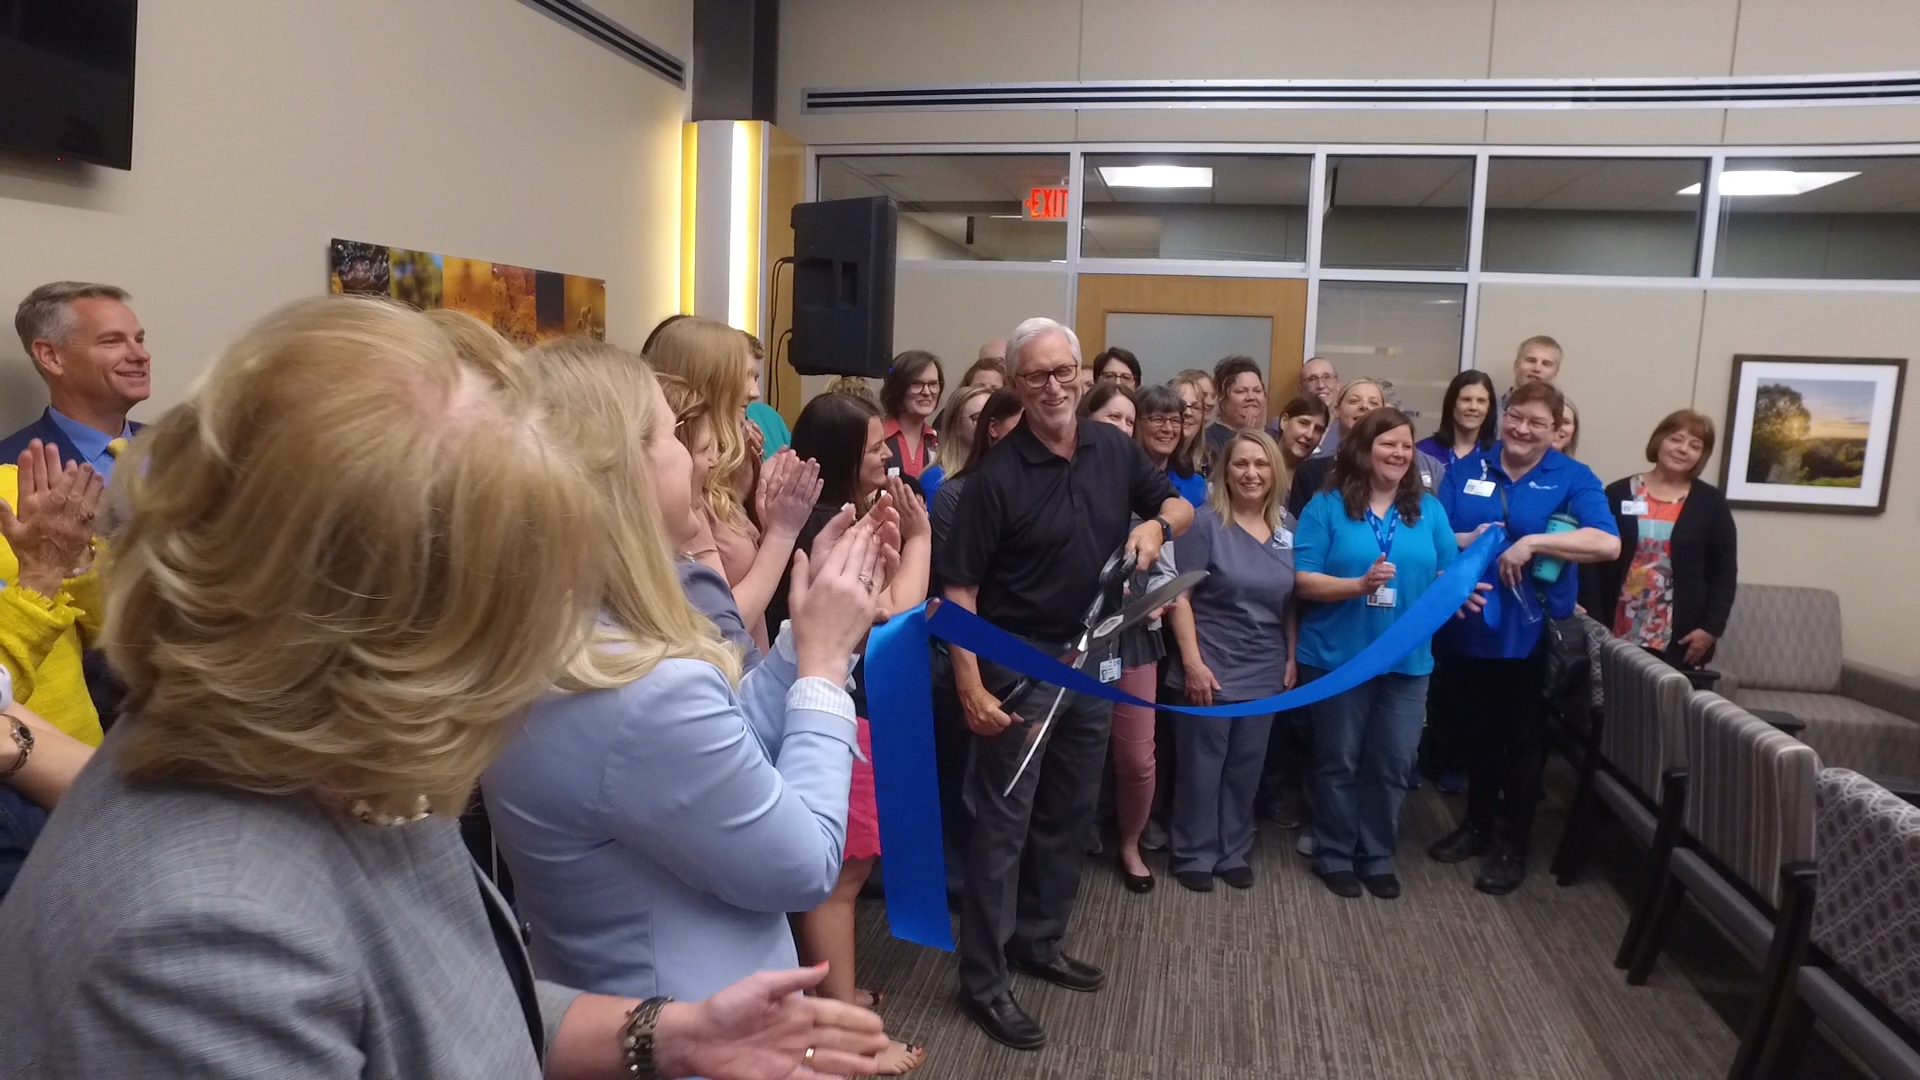 NexCore Group Celebrates Grand Opening of Innovative CHI Health Clinic Valley View